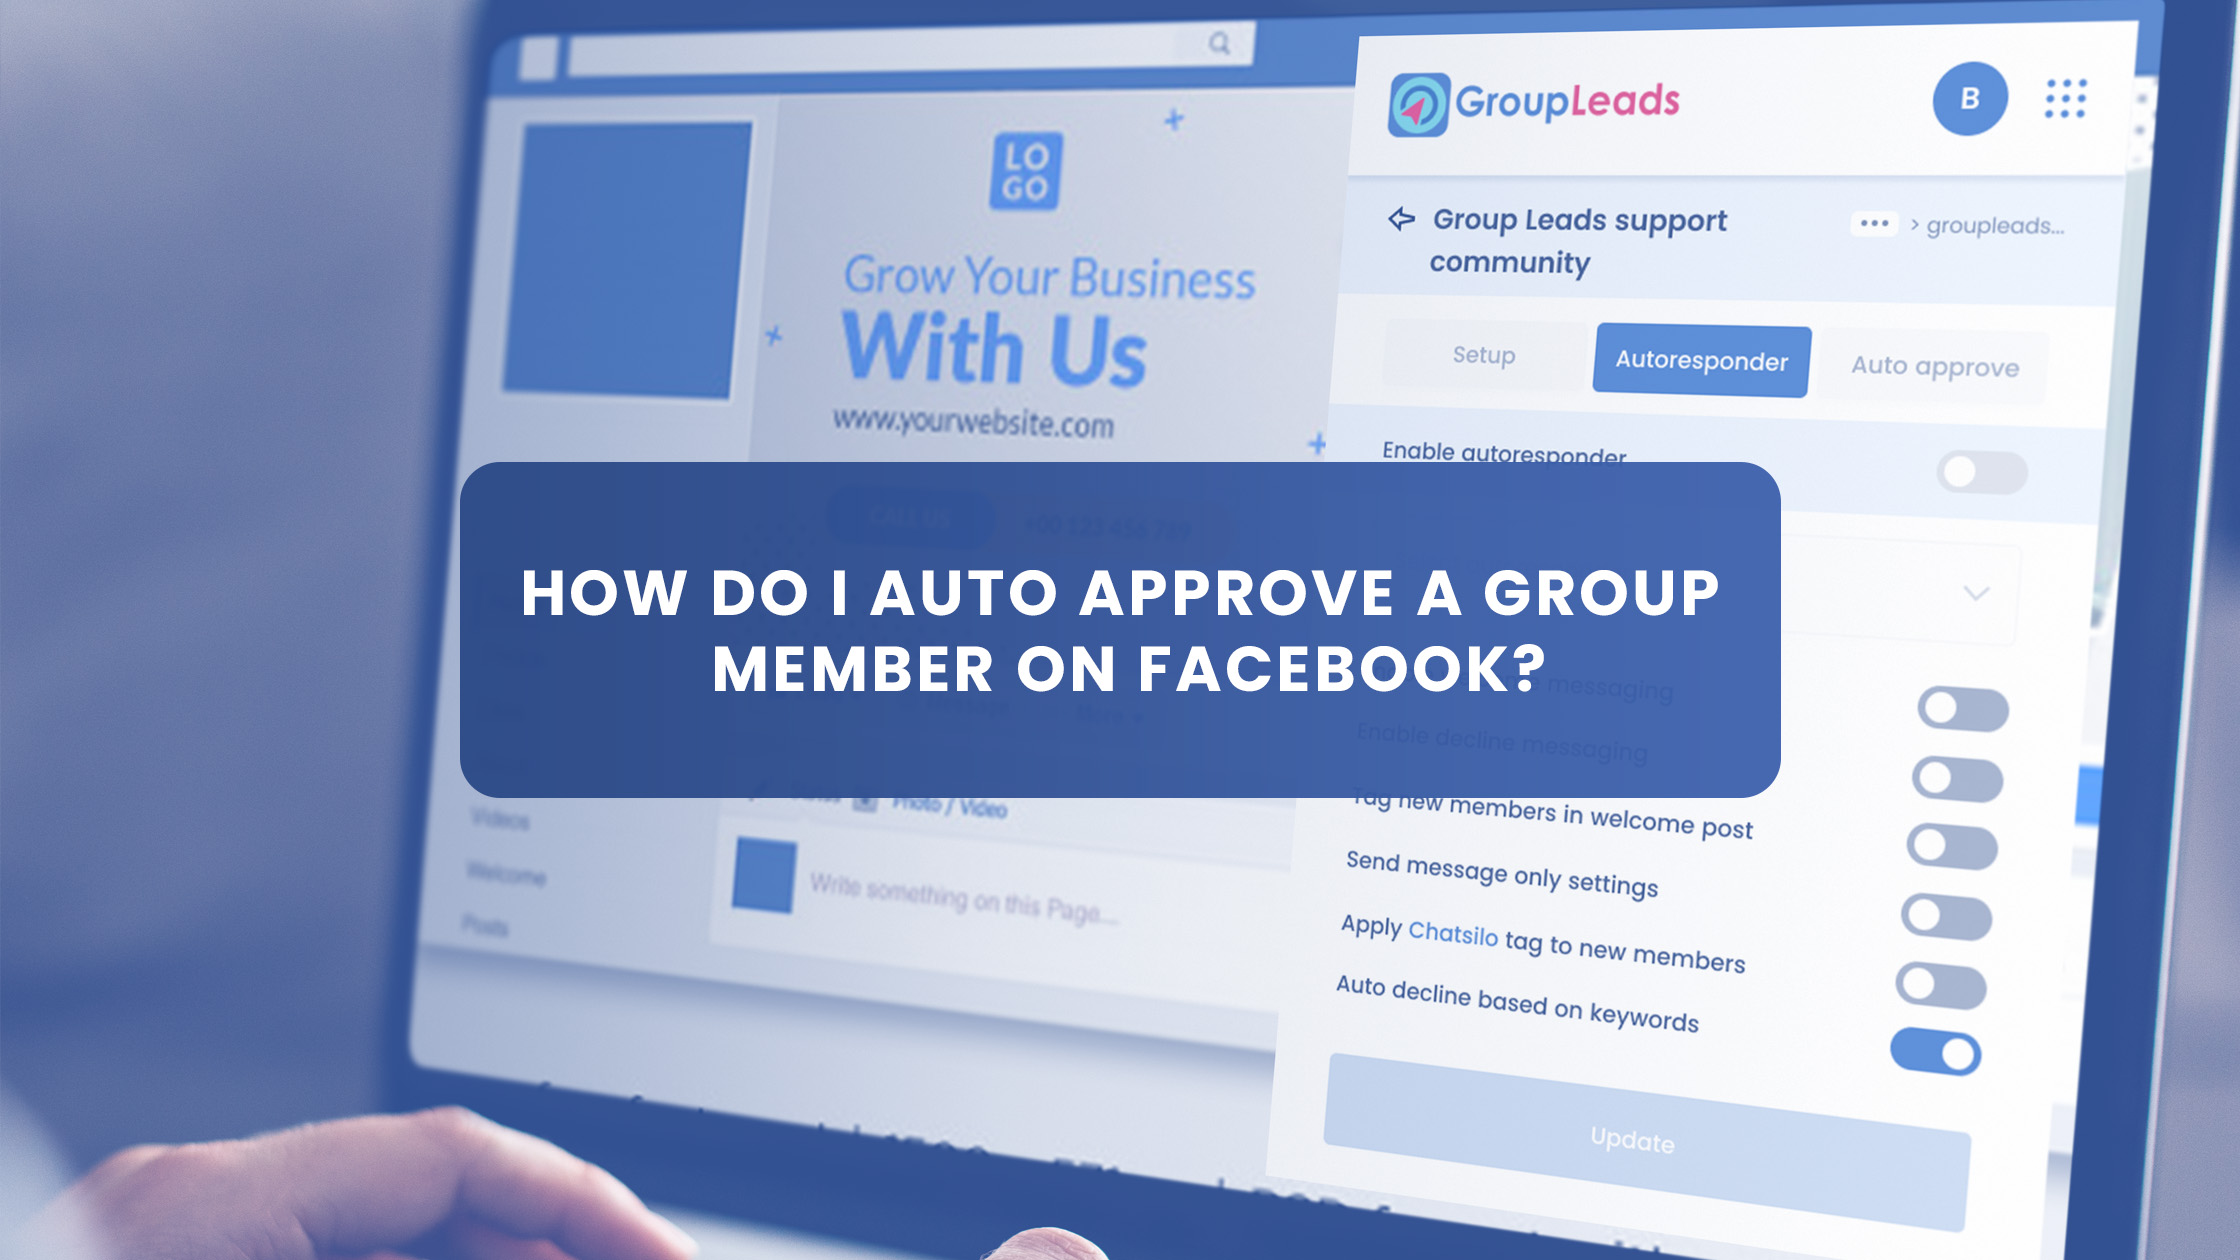 How do I Auto Approve a Group Member on Facebook?